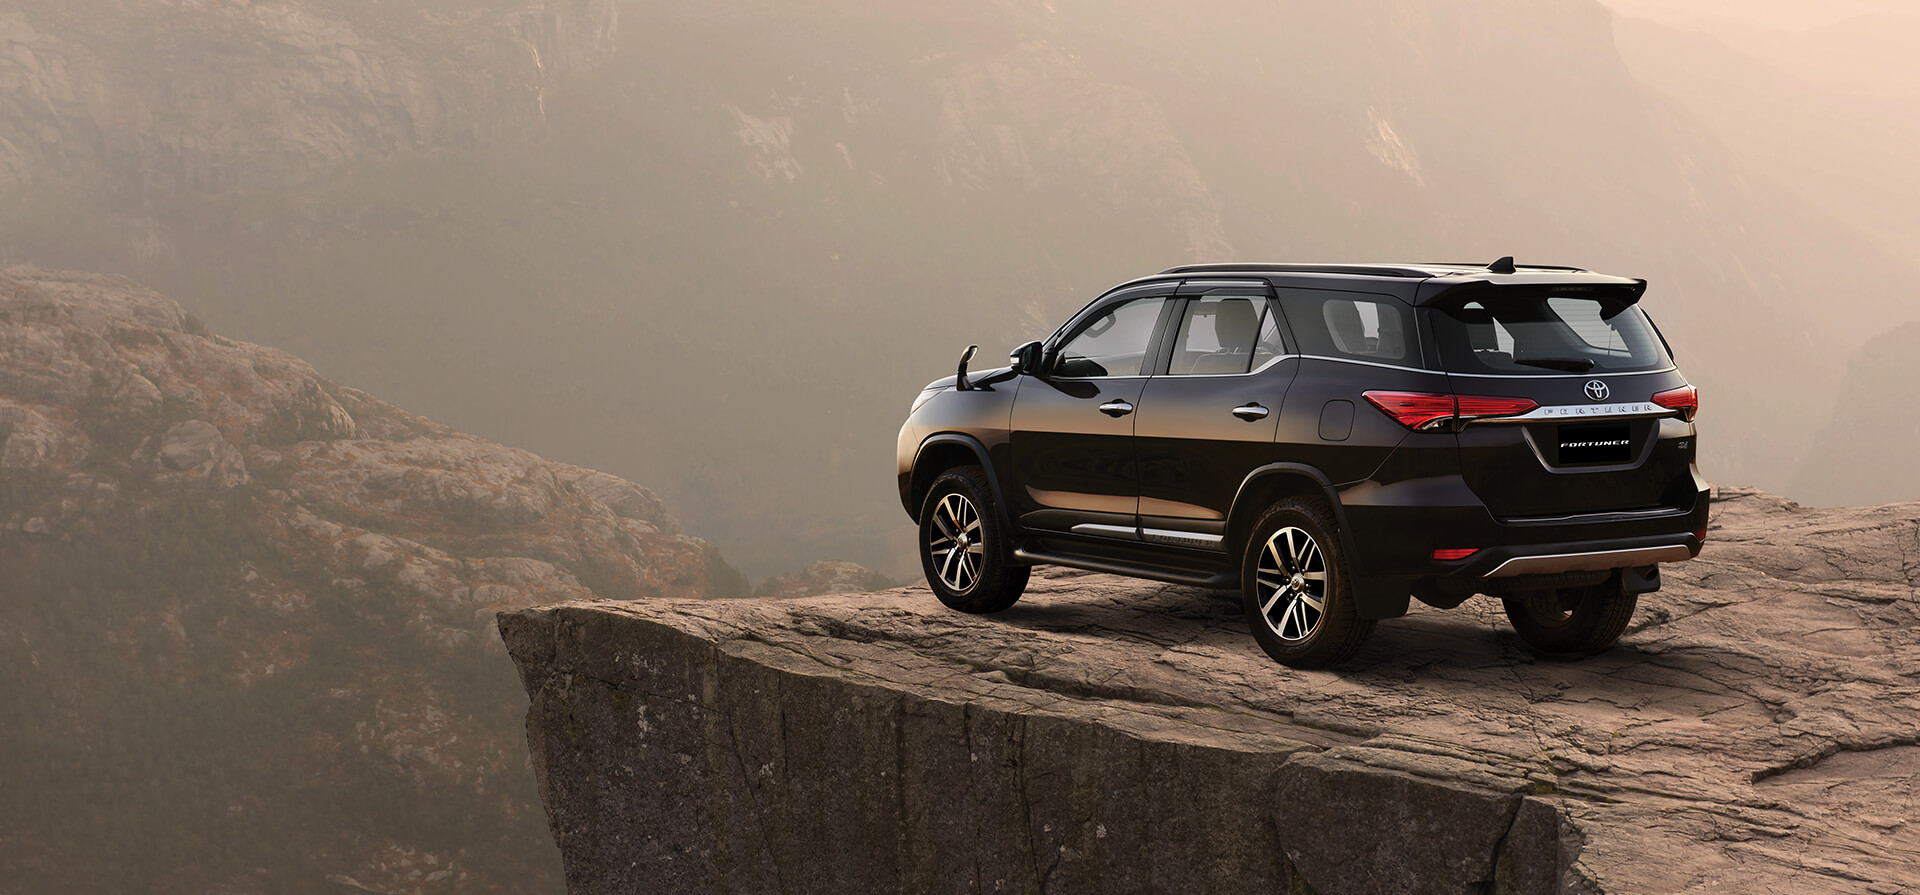 Toyota India | Official Toyota Fortuner site, Fortuner price